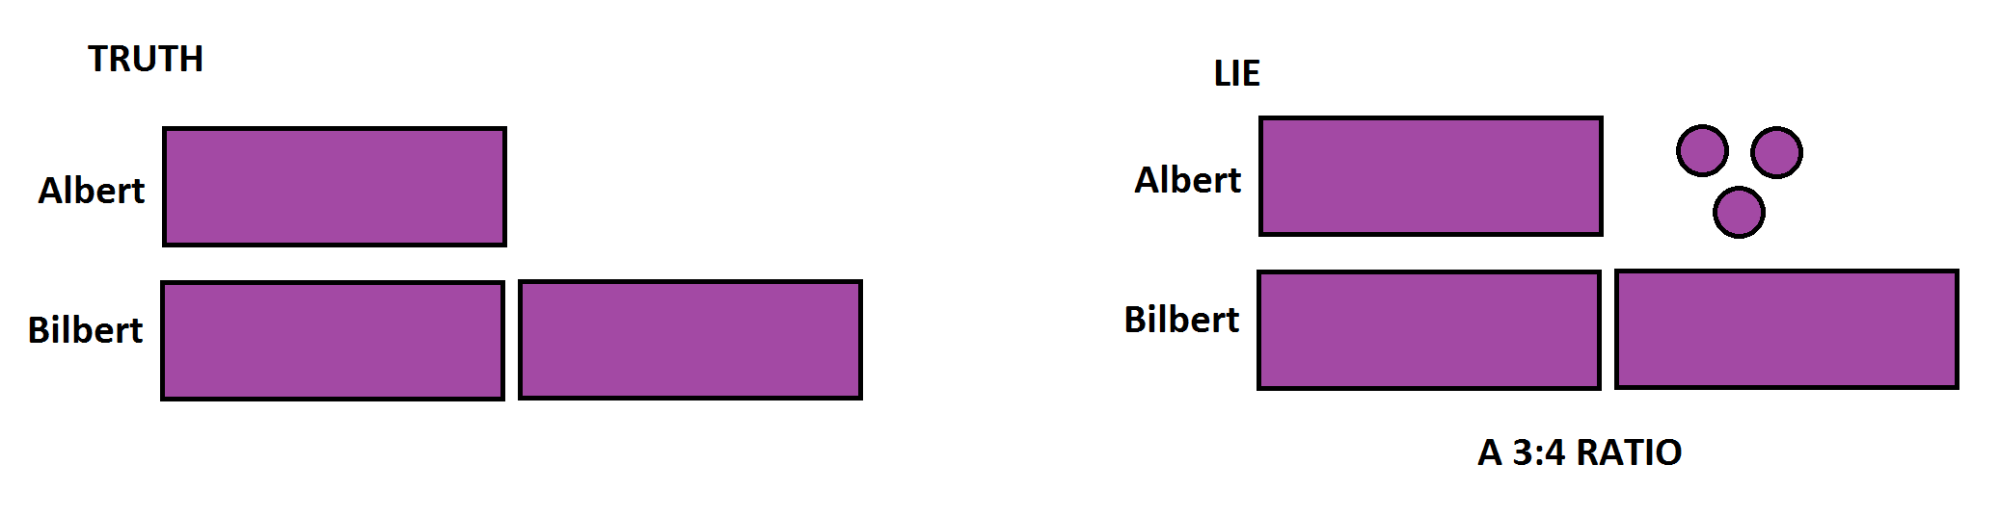 hight resolution of in the picture that is a lie albert supposedly has three groups of a quantity and bilbert four divide each of bilbert s blocks in half and he has four